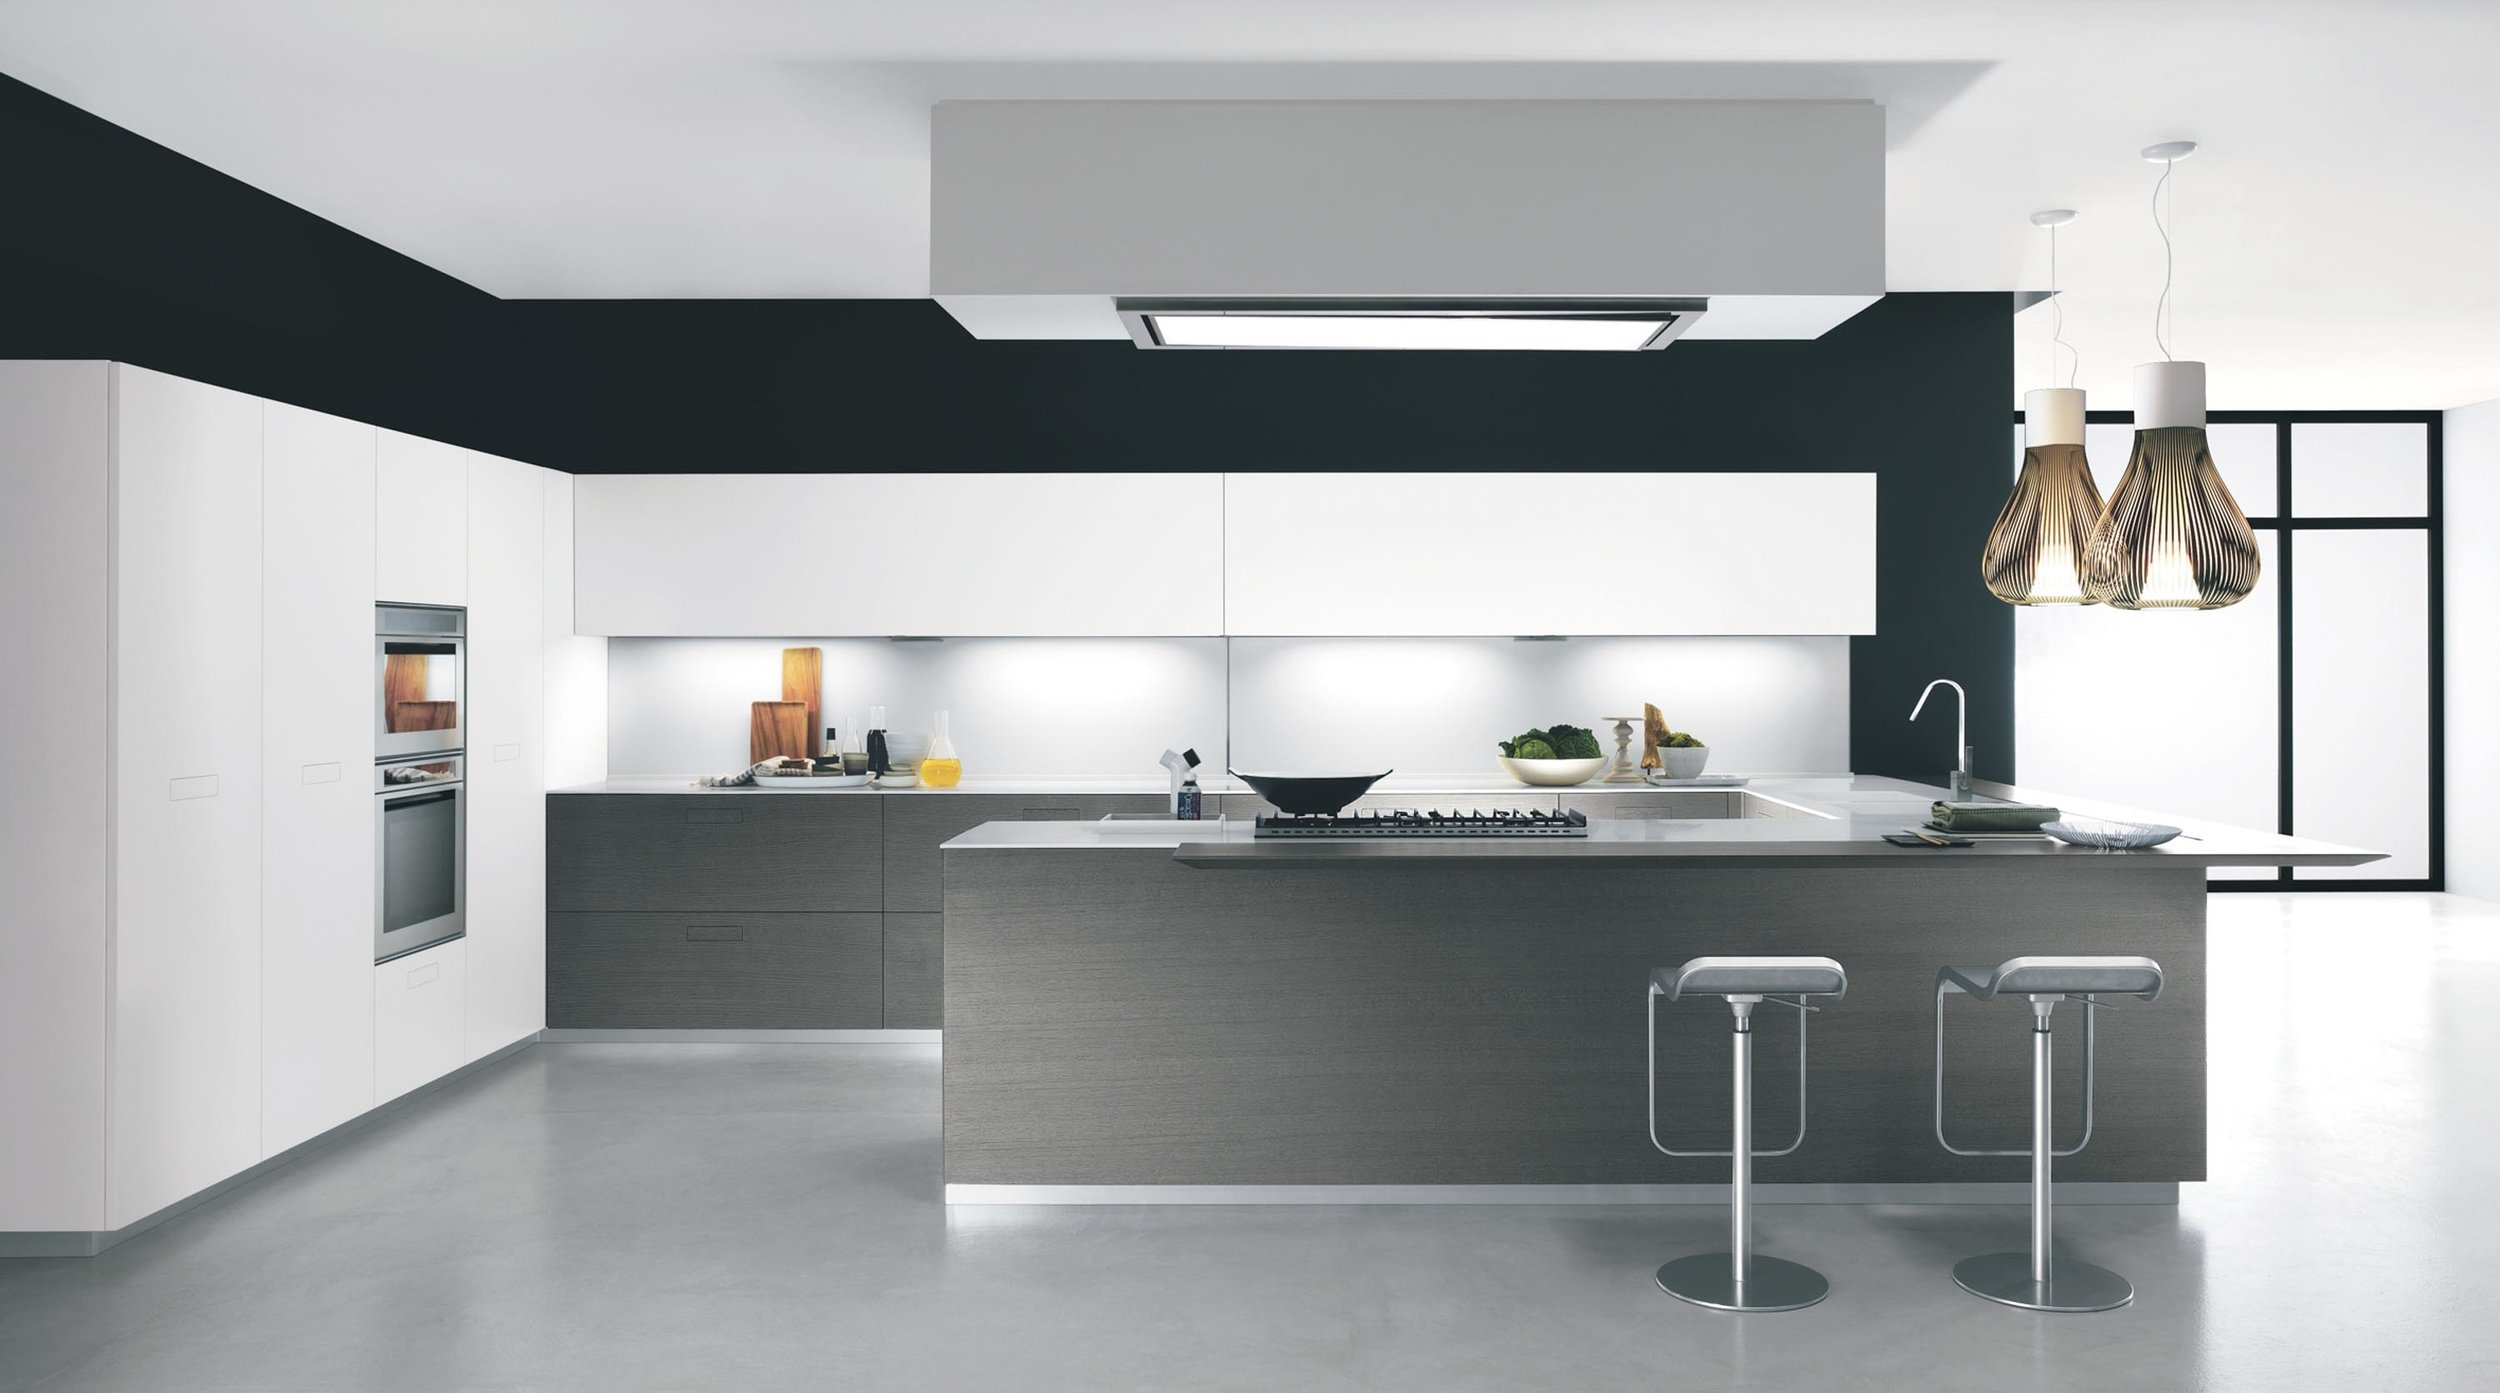 Contemporary style kitchen with L'shaped kitchen counter